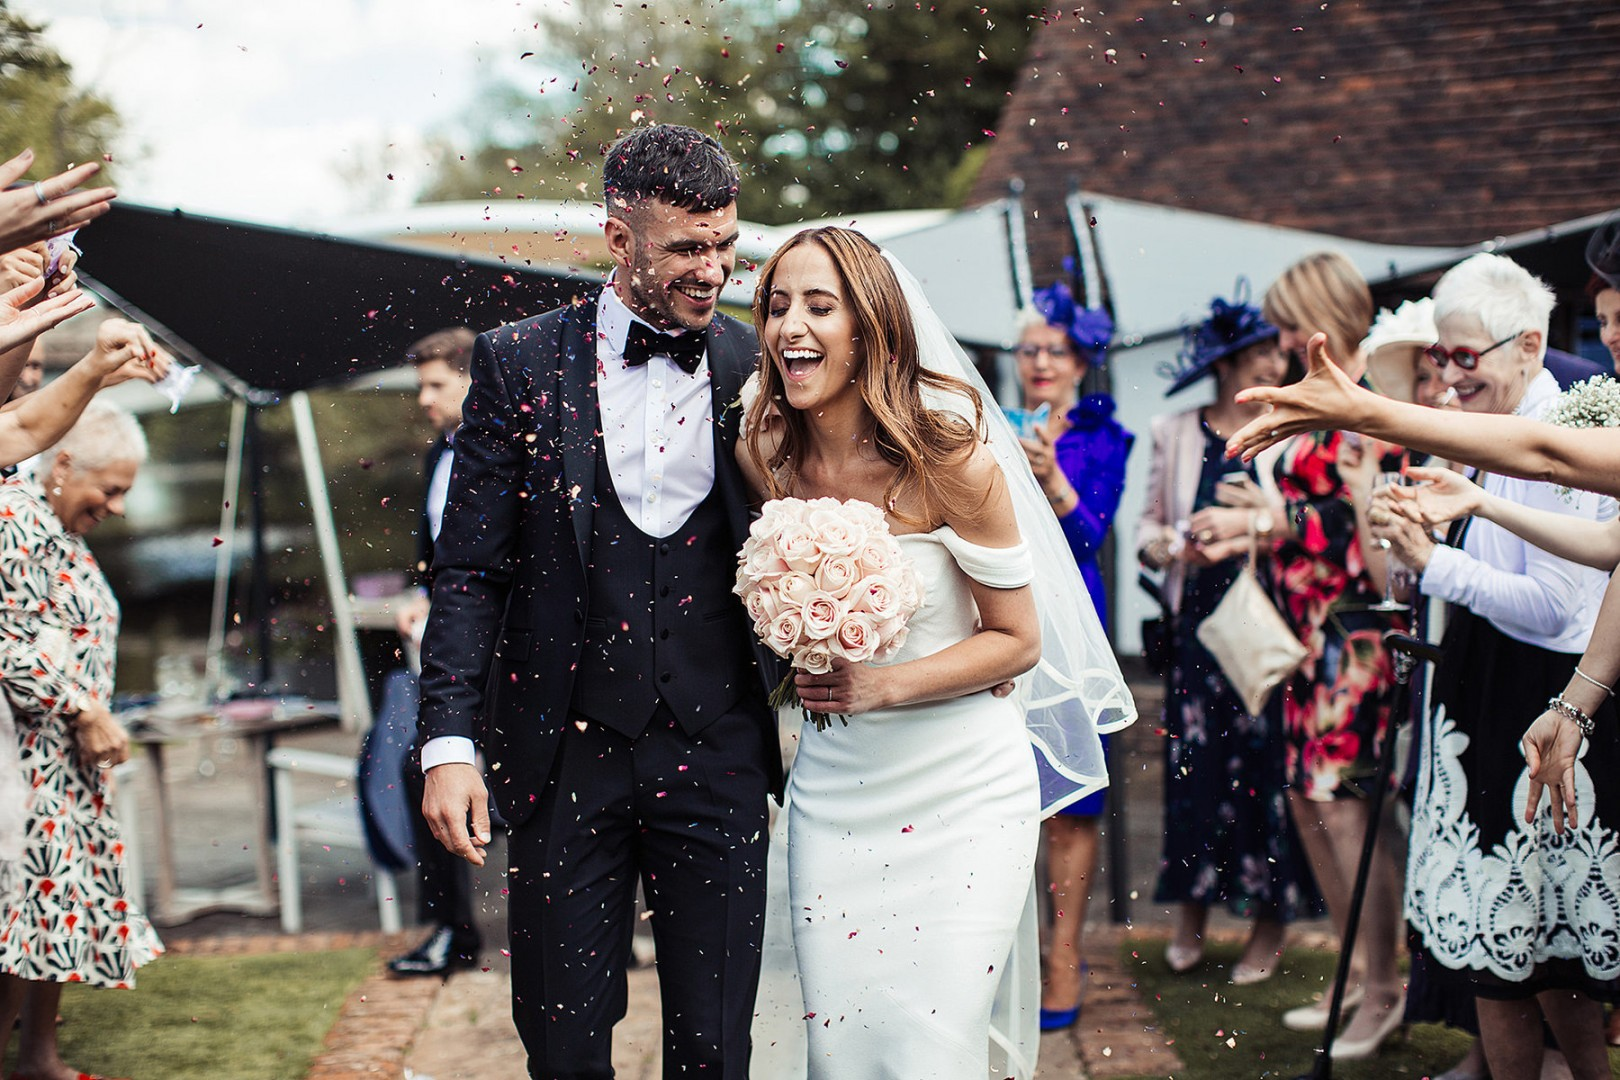 Milsom Weddings, Spring Open Days in Essex and Suffolk – May 2021